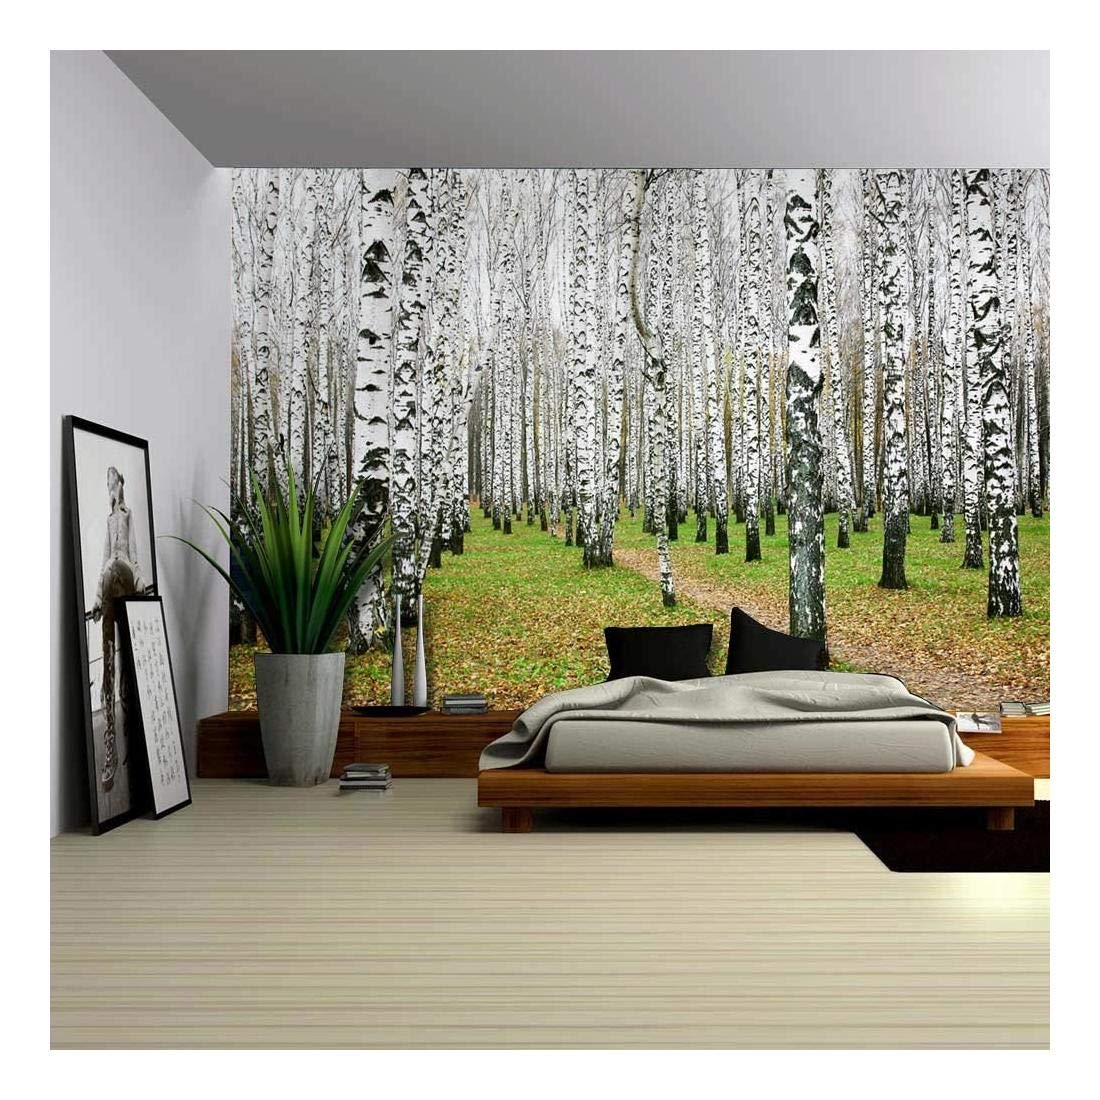 A Small Pathway in a Tall Brich Tree Forest Wall Mural - Wall Murals